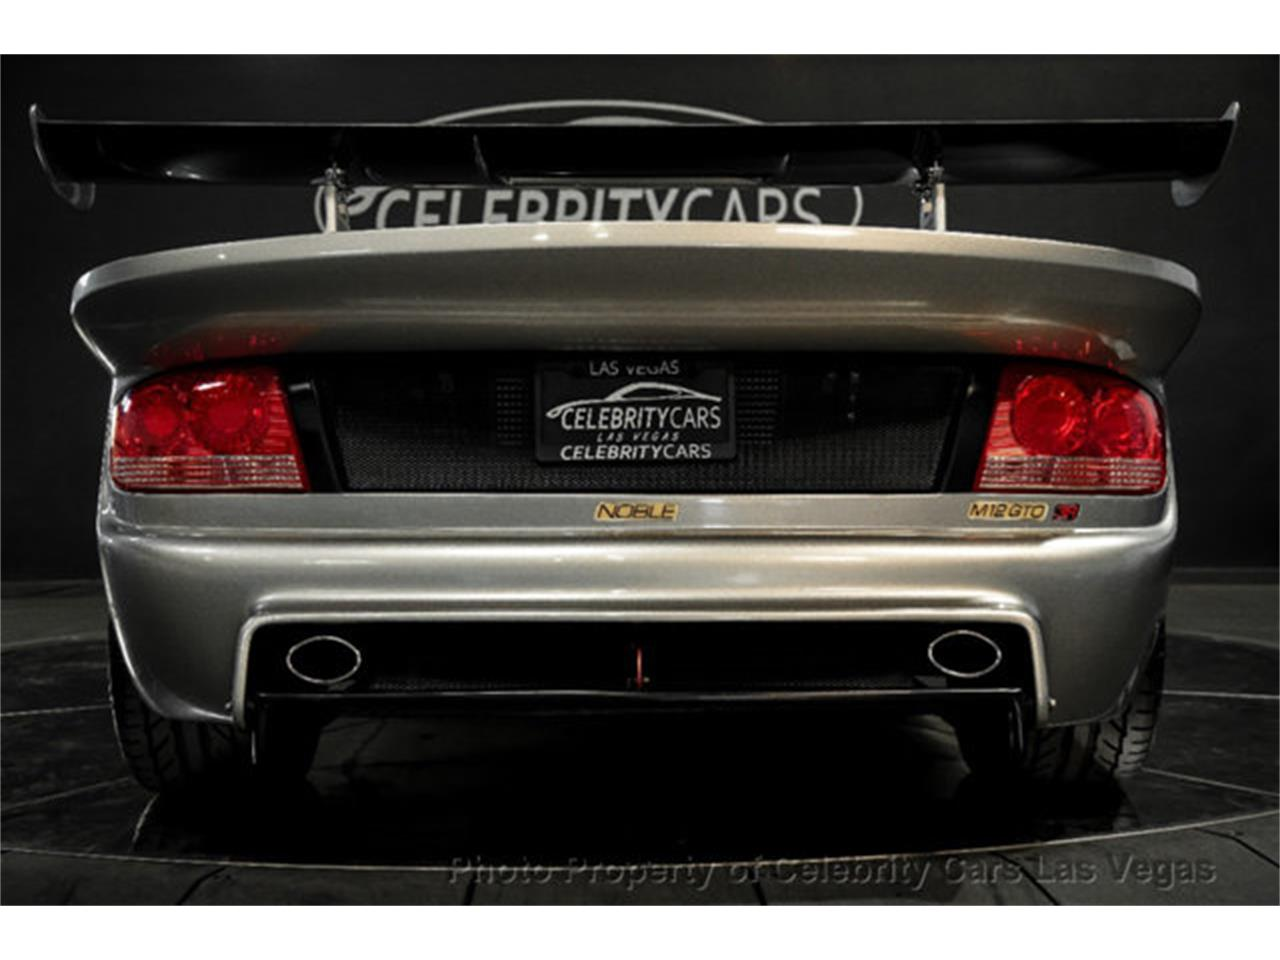 Large Picture of '04 M12 GTO-3R located in Nevada - $54,900.00 Offered by Celebrity Cars Las Vegas - OY16